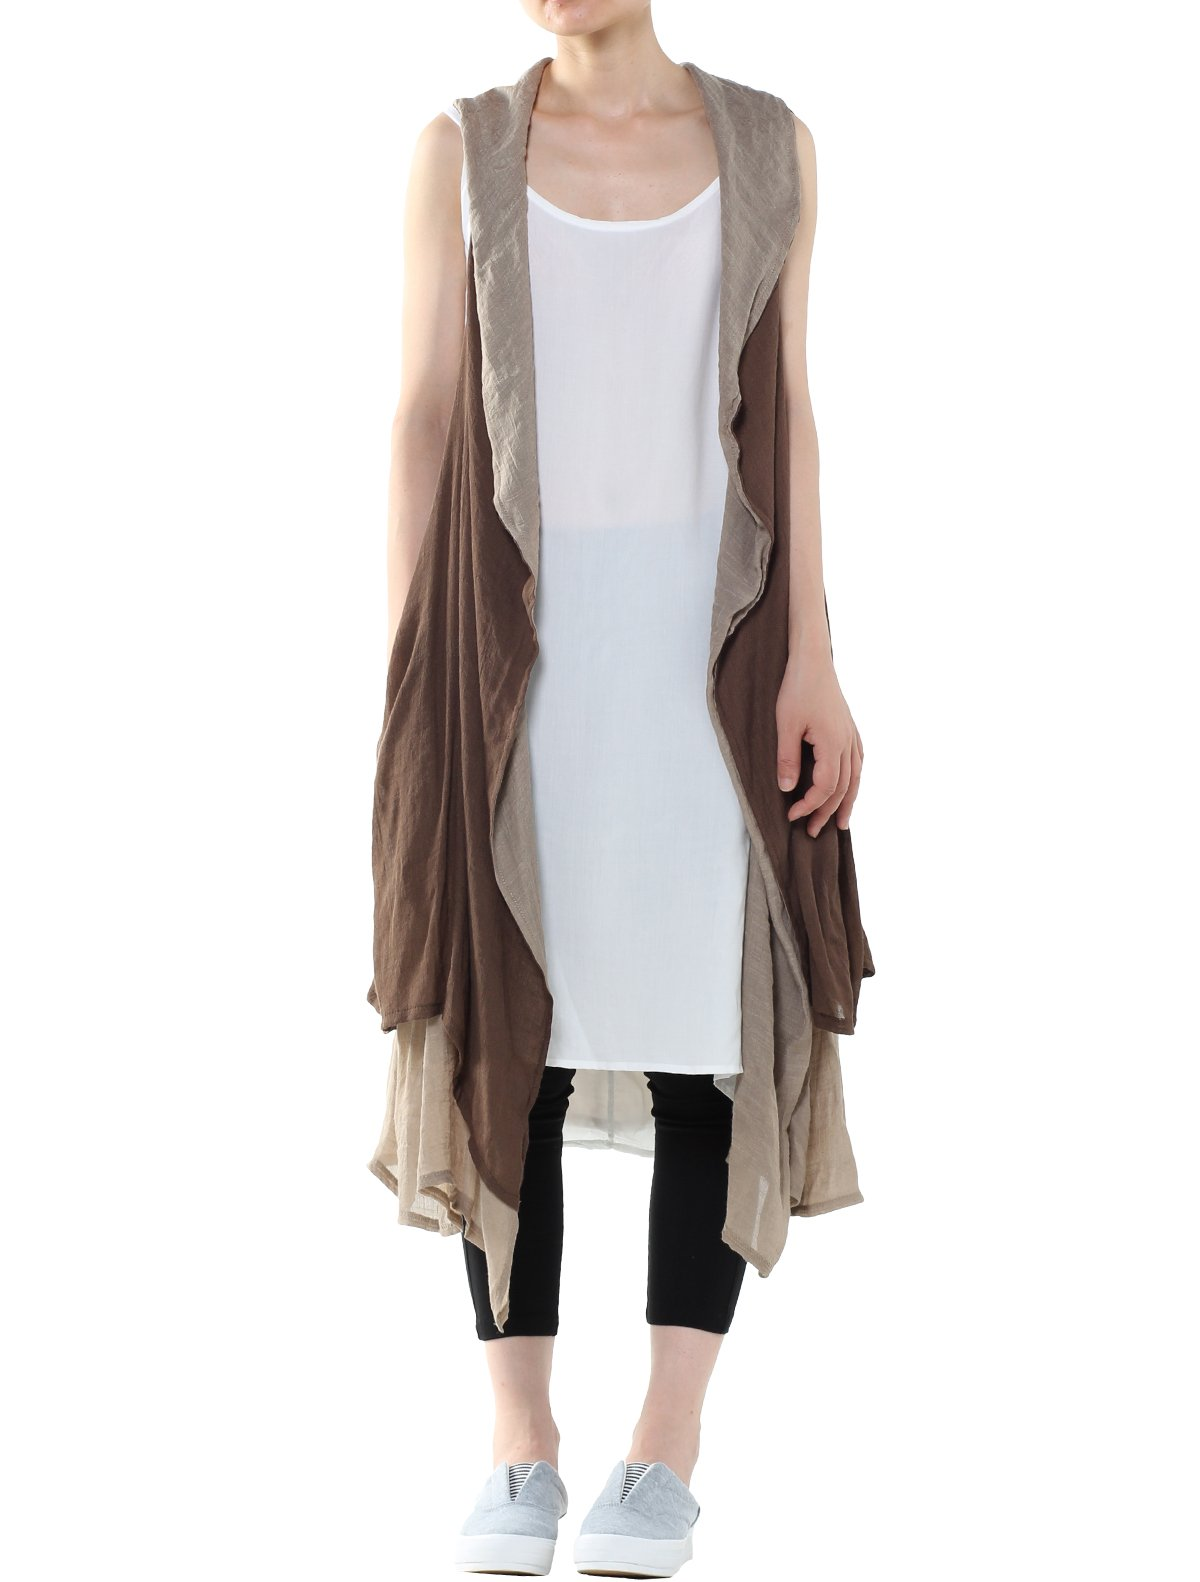 Mordenmiss Women's Casual Loose Waistcoat Travel Clothing (Style 2-Brown)